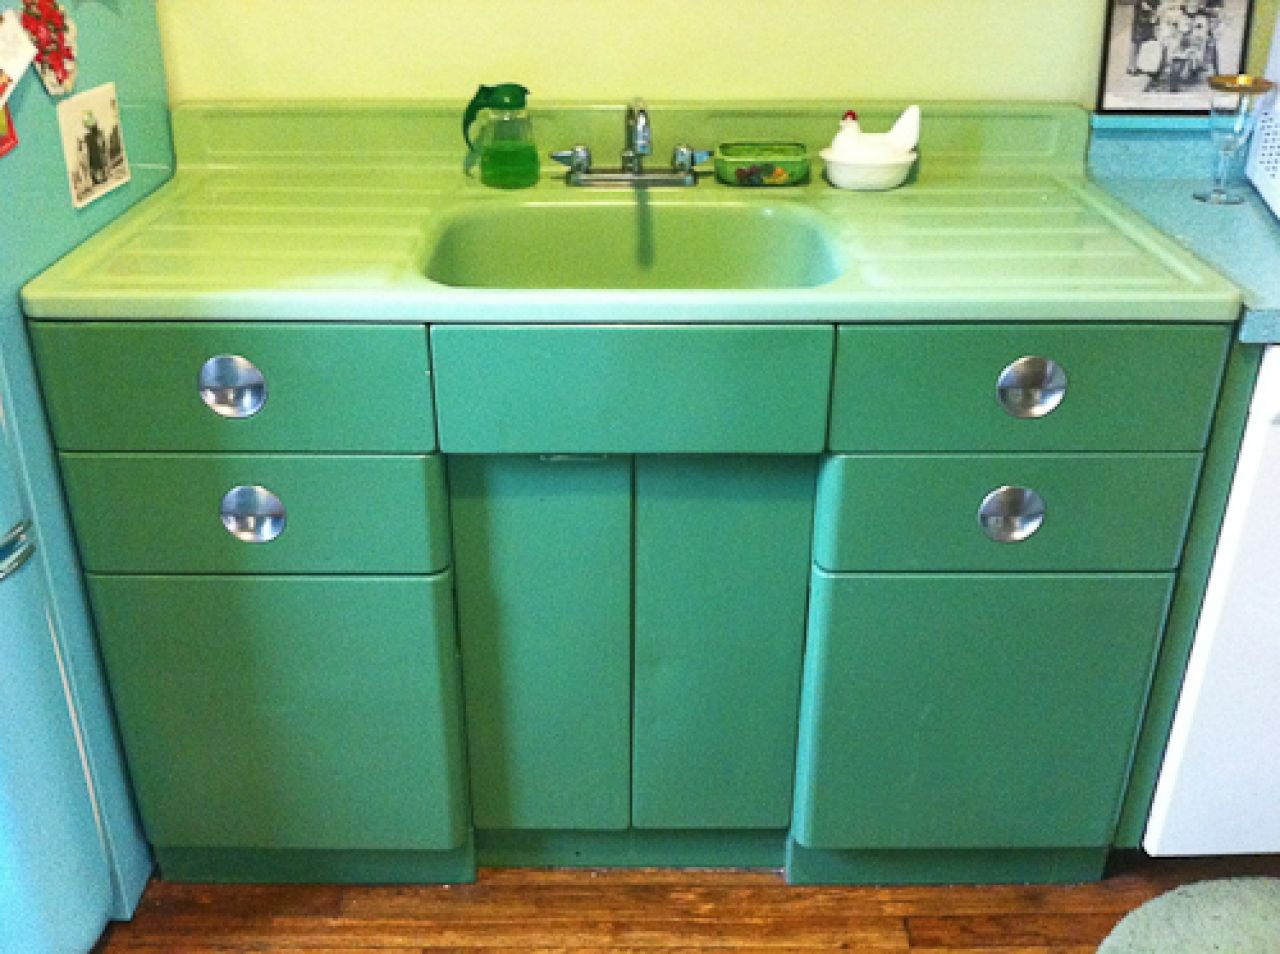 exceptional Vintage Steel Kitchen Cabinets #9: Vintage Metal Kitchen Cabinet | Vintage jadeite porcelain drainboard sink  and metal sink cabinet